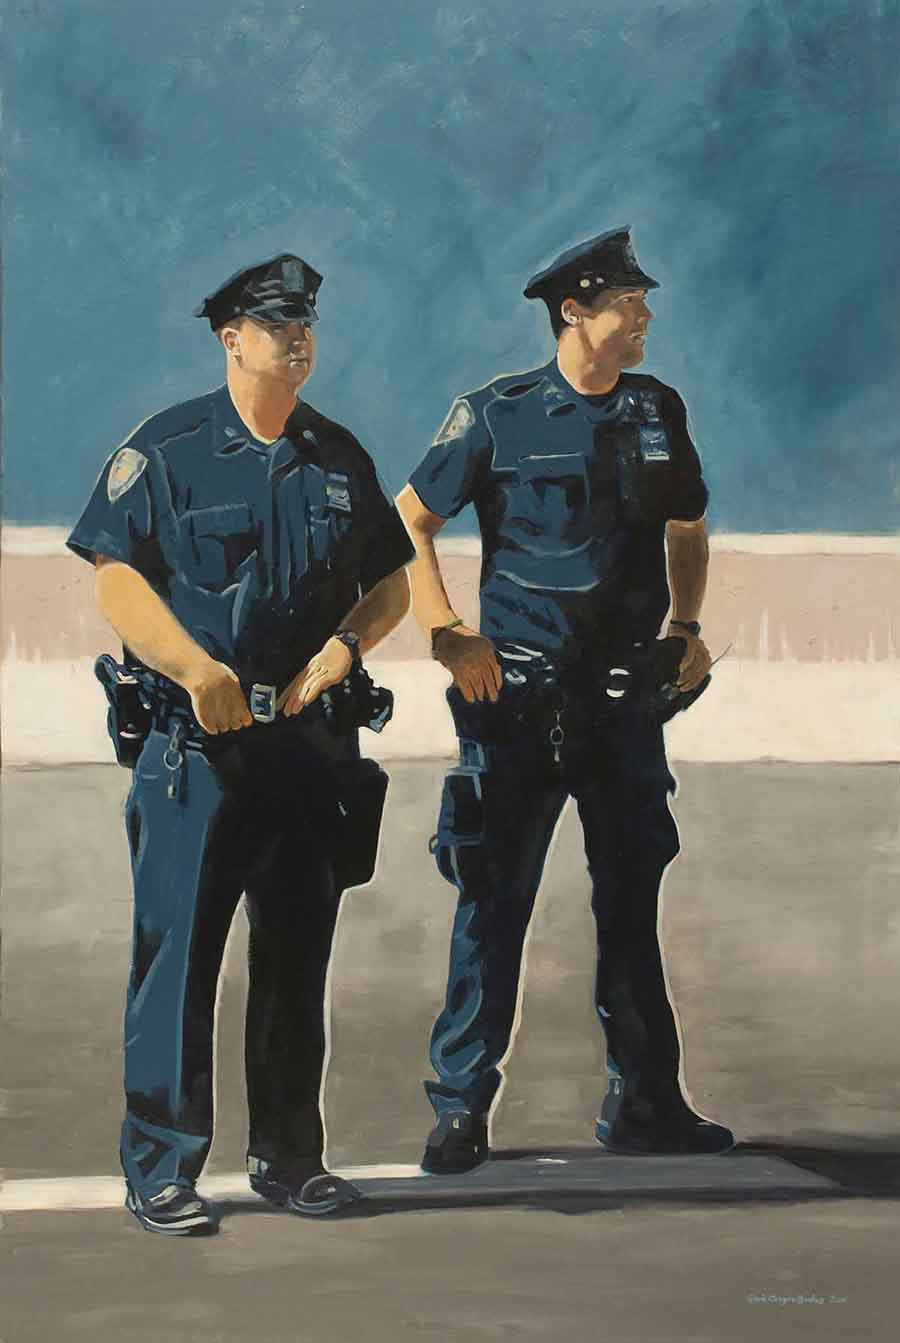 NYPD - Oil Painting by Gavin Cologne-Brookes